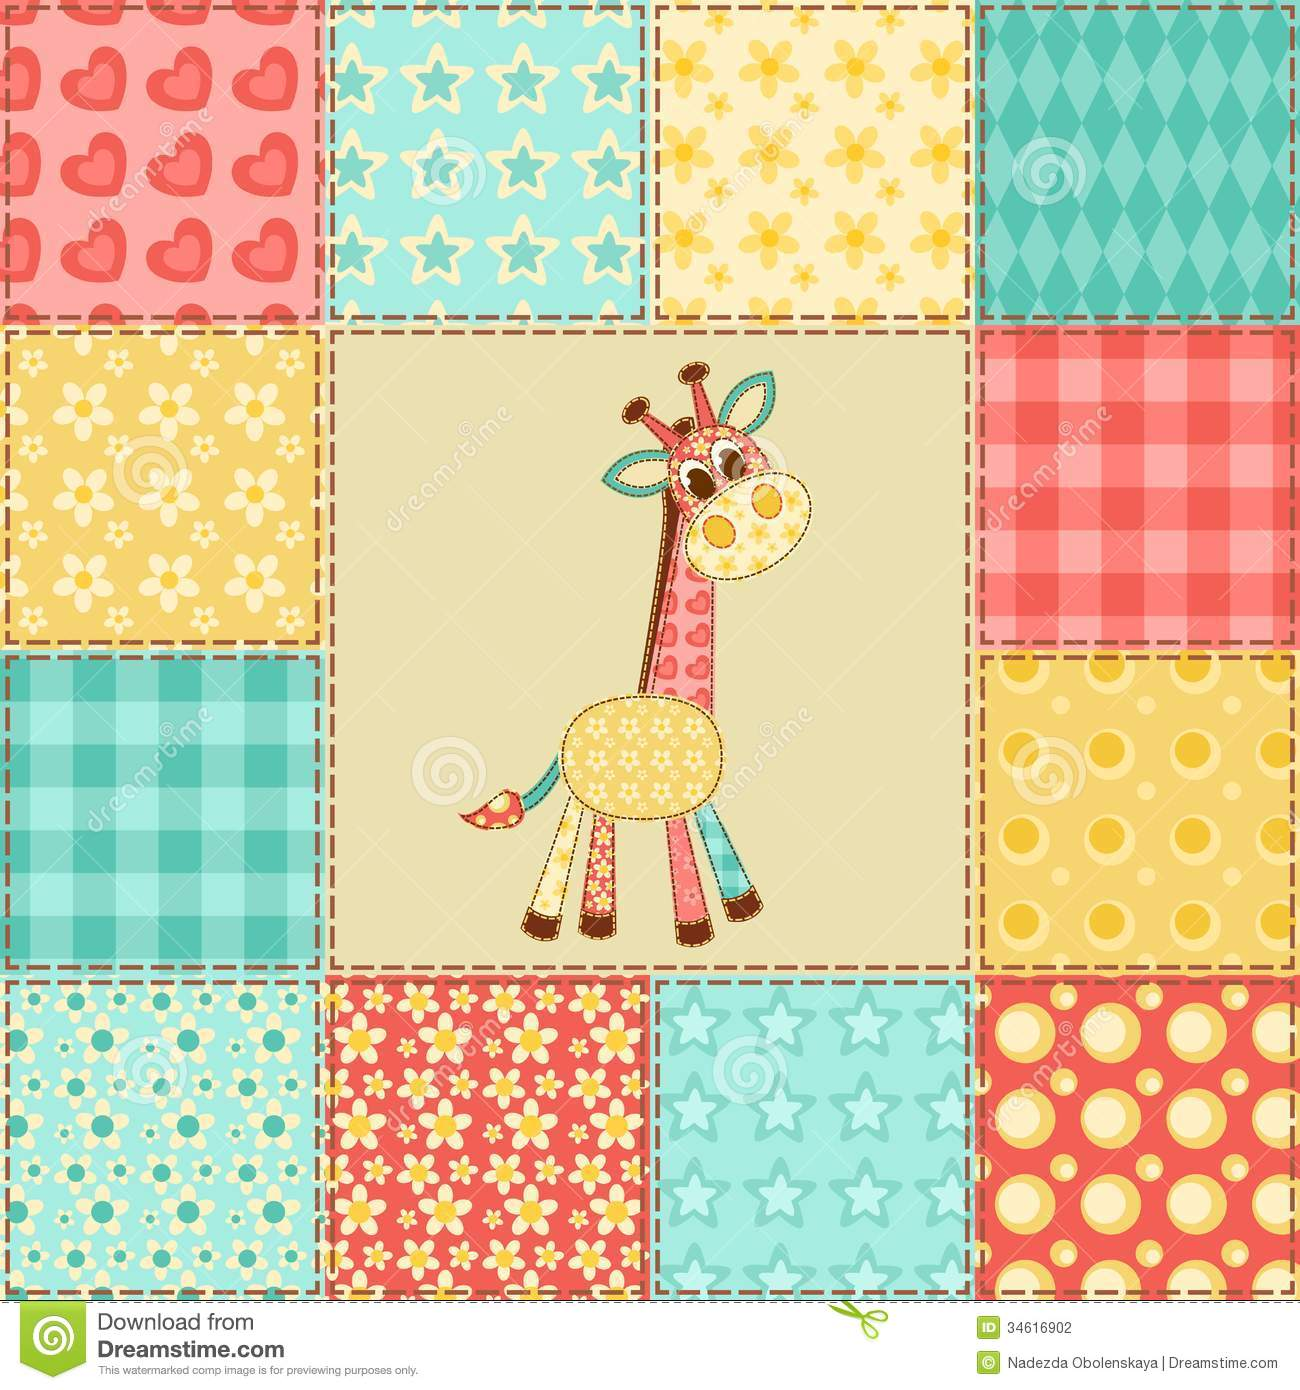 Giraffe Patchwork Pattern Stock Photography Image 34616902